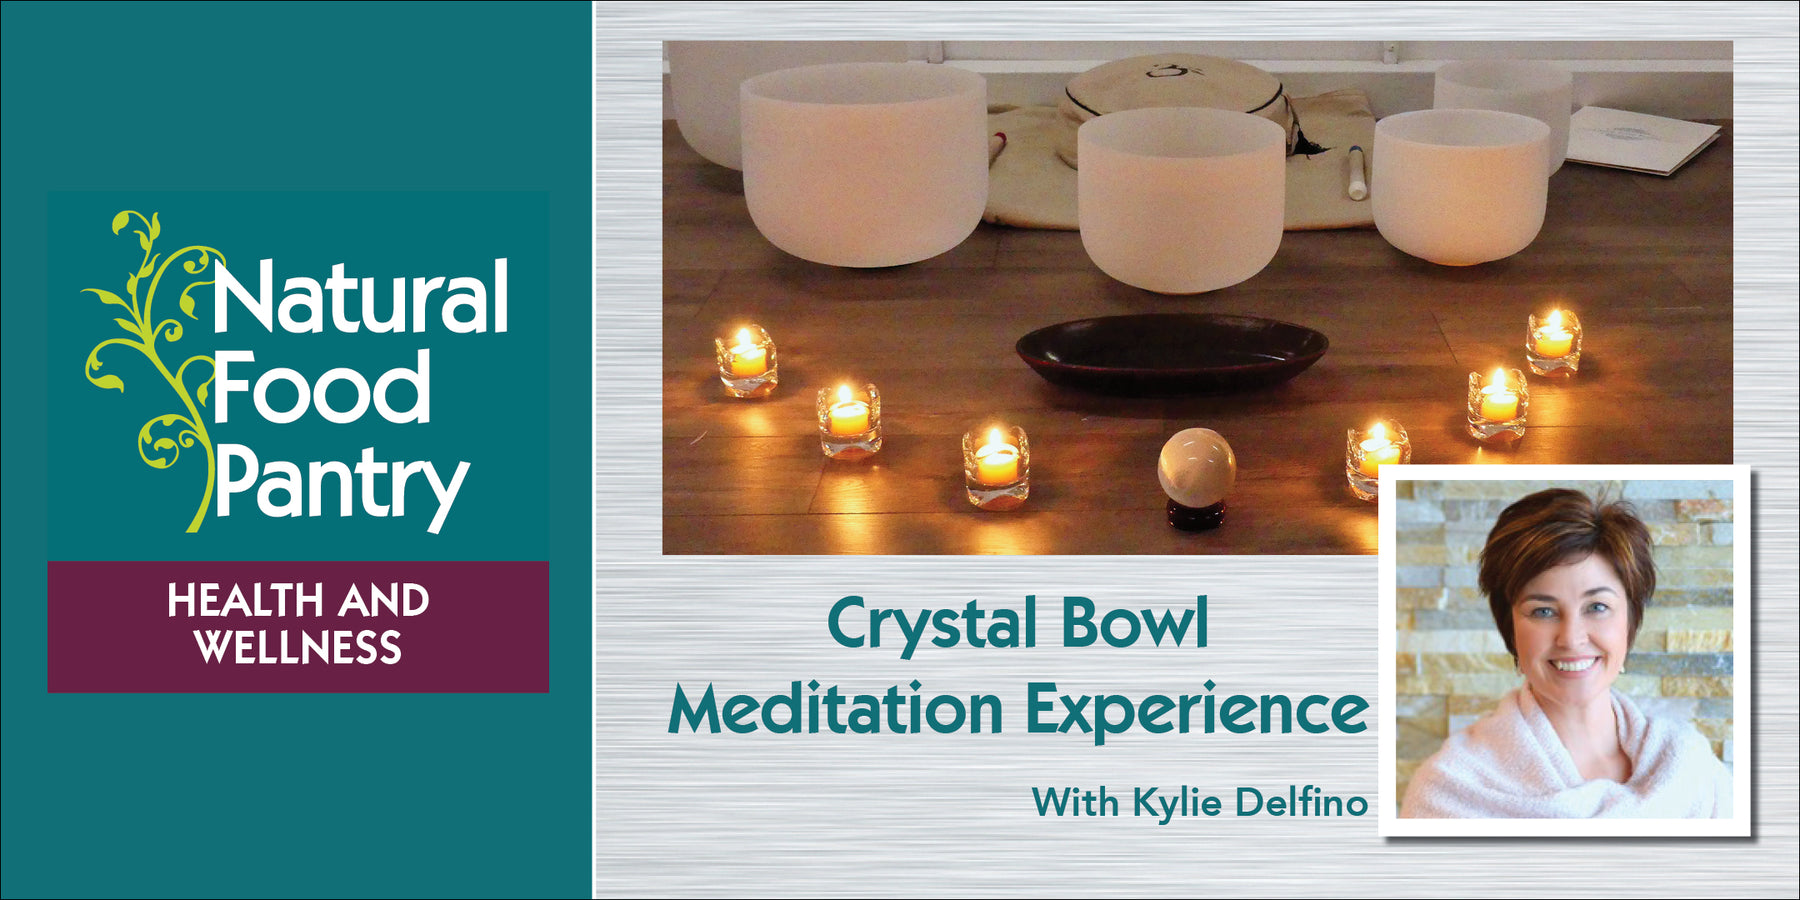 Nov 10: Relaxed, Grounded & Nourished NFP Meditation Experience